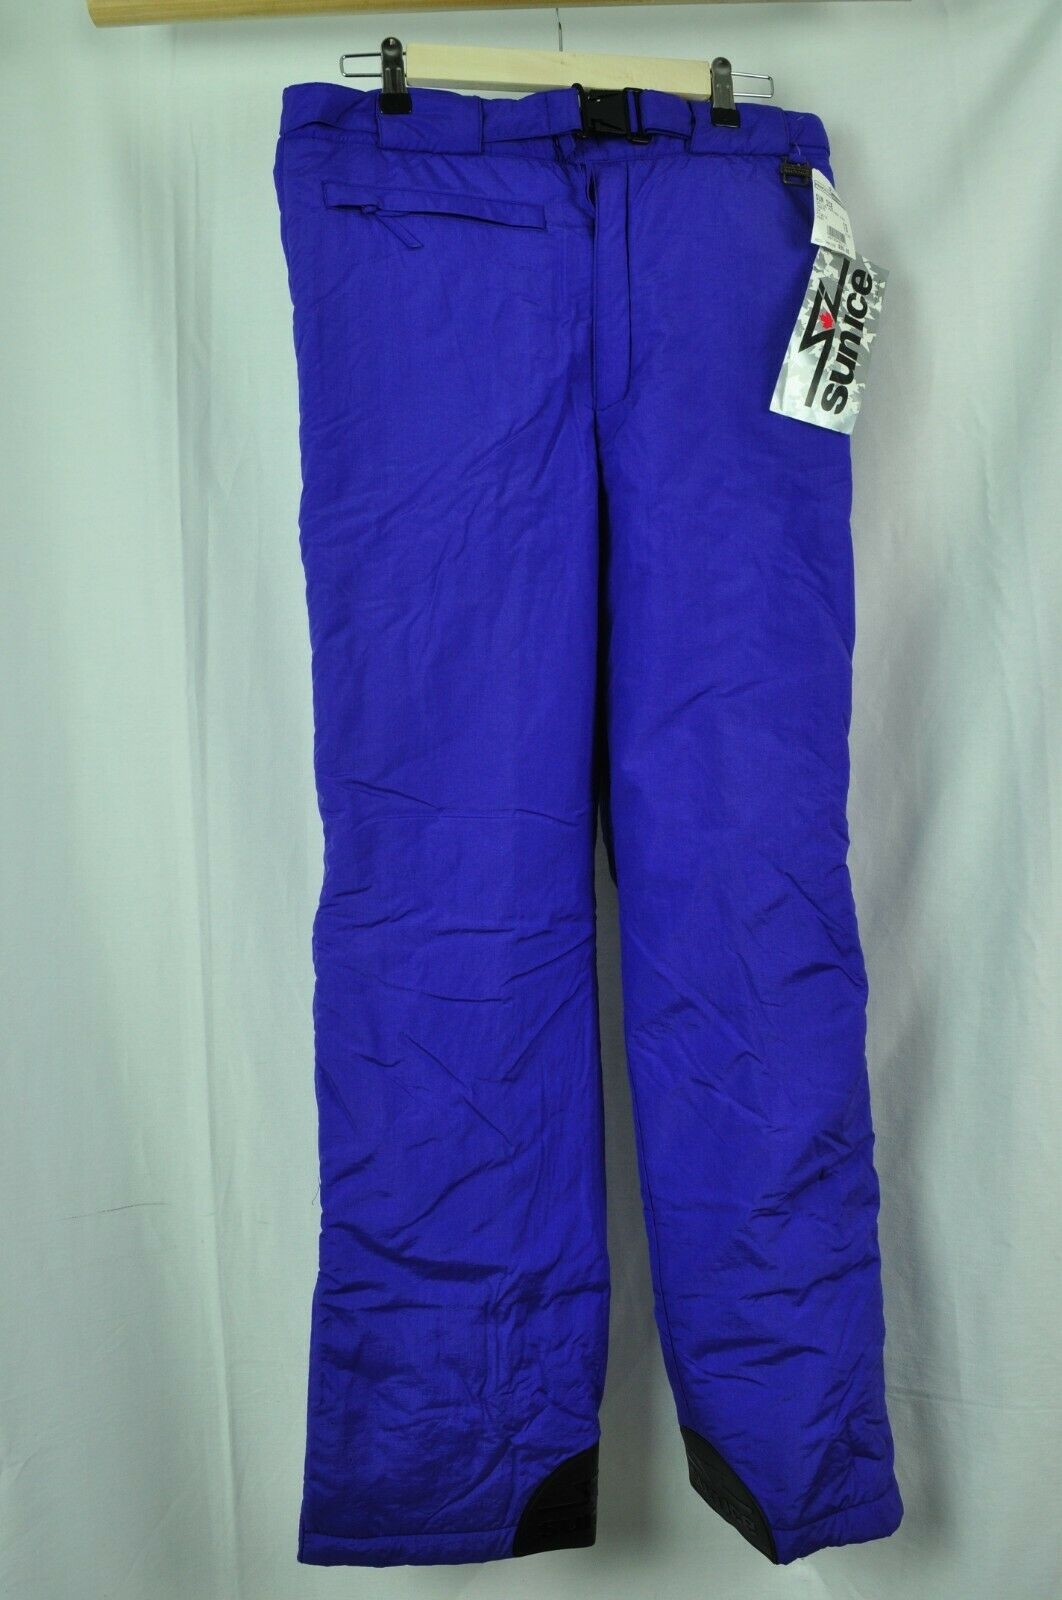 NEW Kids Sunice Mariner Technical Ski Snowboard Insulated Pants  Size 18 NEW